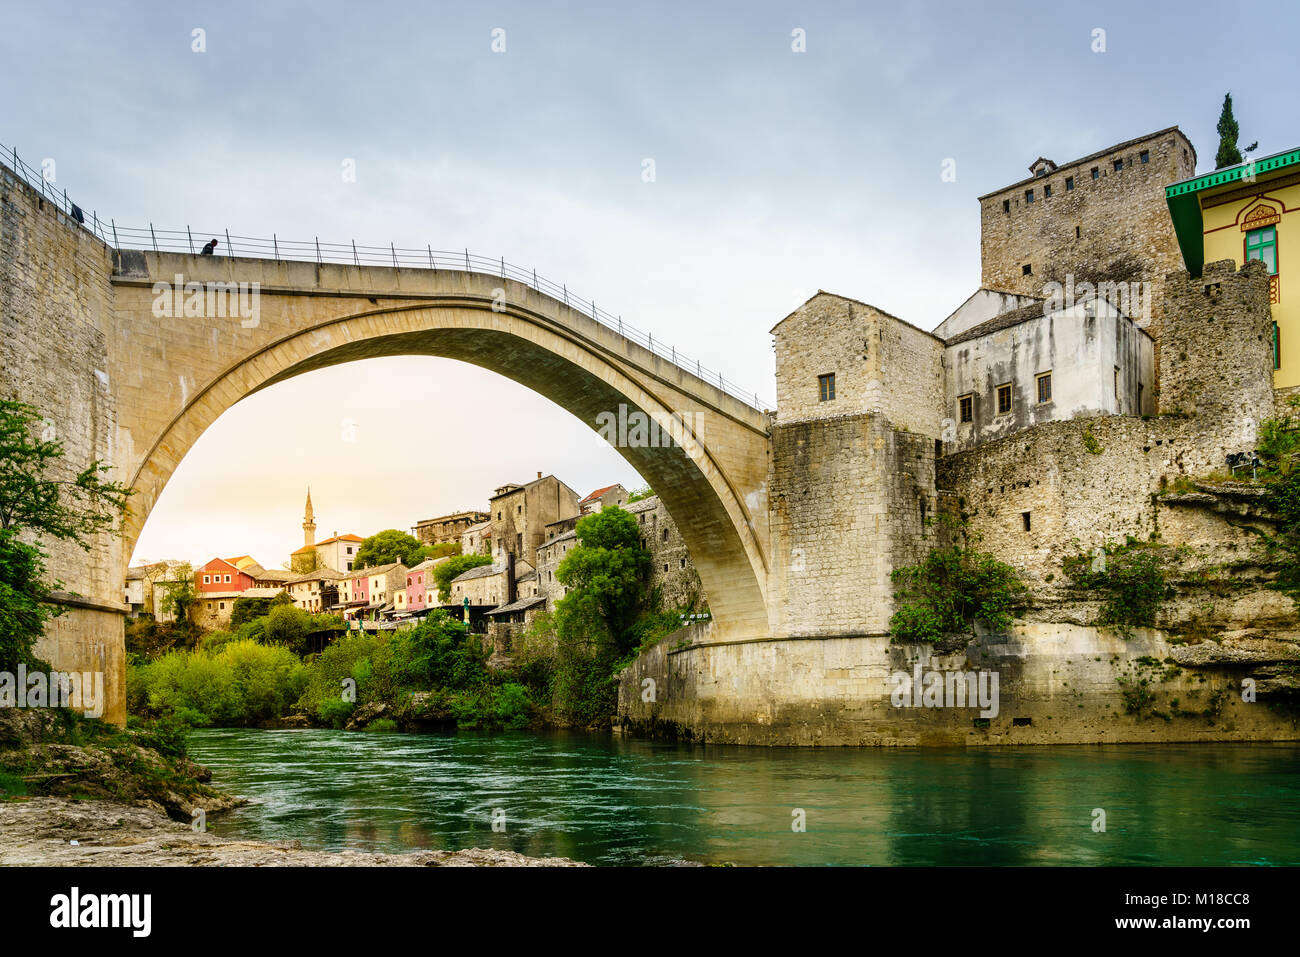 View of famous Mostar Bridge from the bank of Neretva River, Mostar, Bosnia - Stock Image